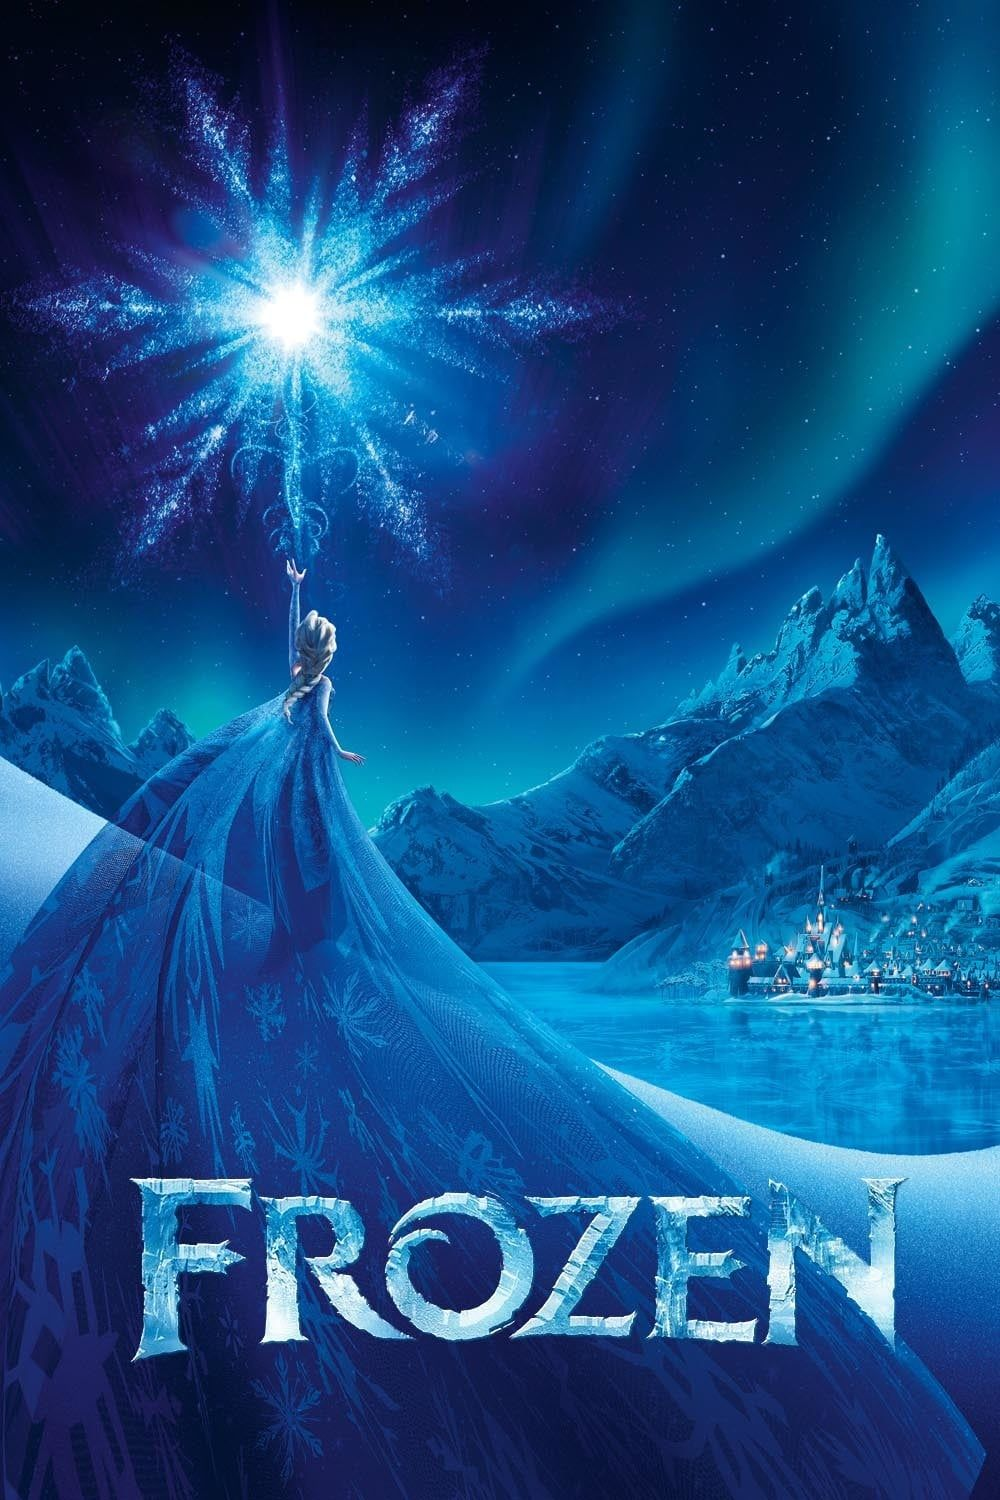 Frozen (2013) Full Movie (HD Quality)  Click the picture and follow the instruction (100% secure)  Frozen (2013) online free stream Frozen (2013) free online Frozen (2013) movie Frozen (2013) online free streaming Frozen (2013) full movie stream Frozen (2013) full movie